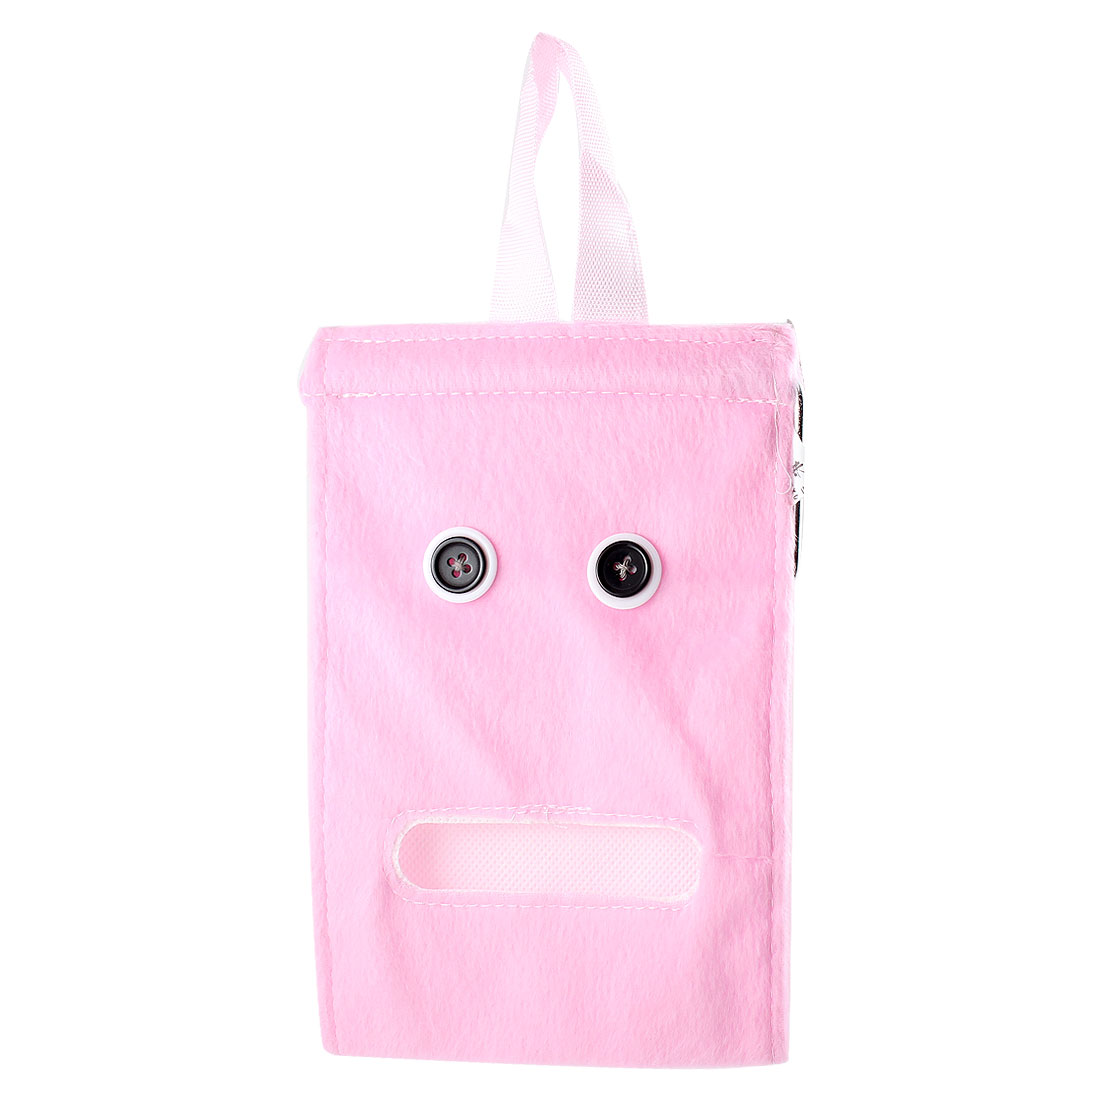 Washroom Bedroom Roll Paper Tissue Napkin Plush Dispenser Container Pink